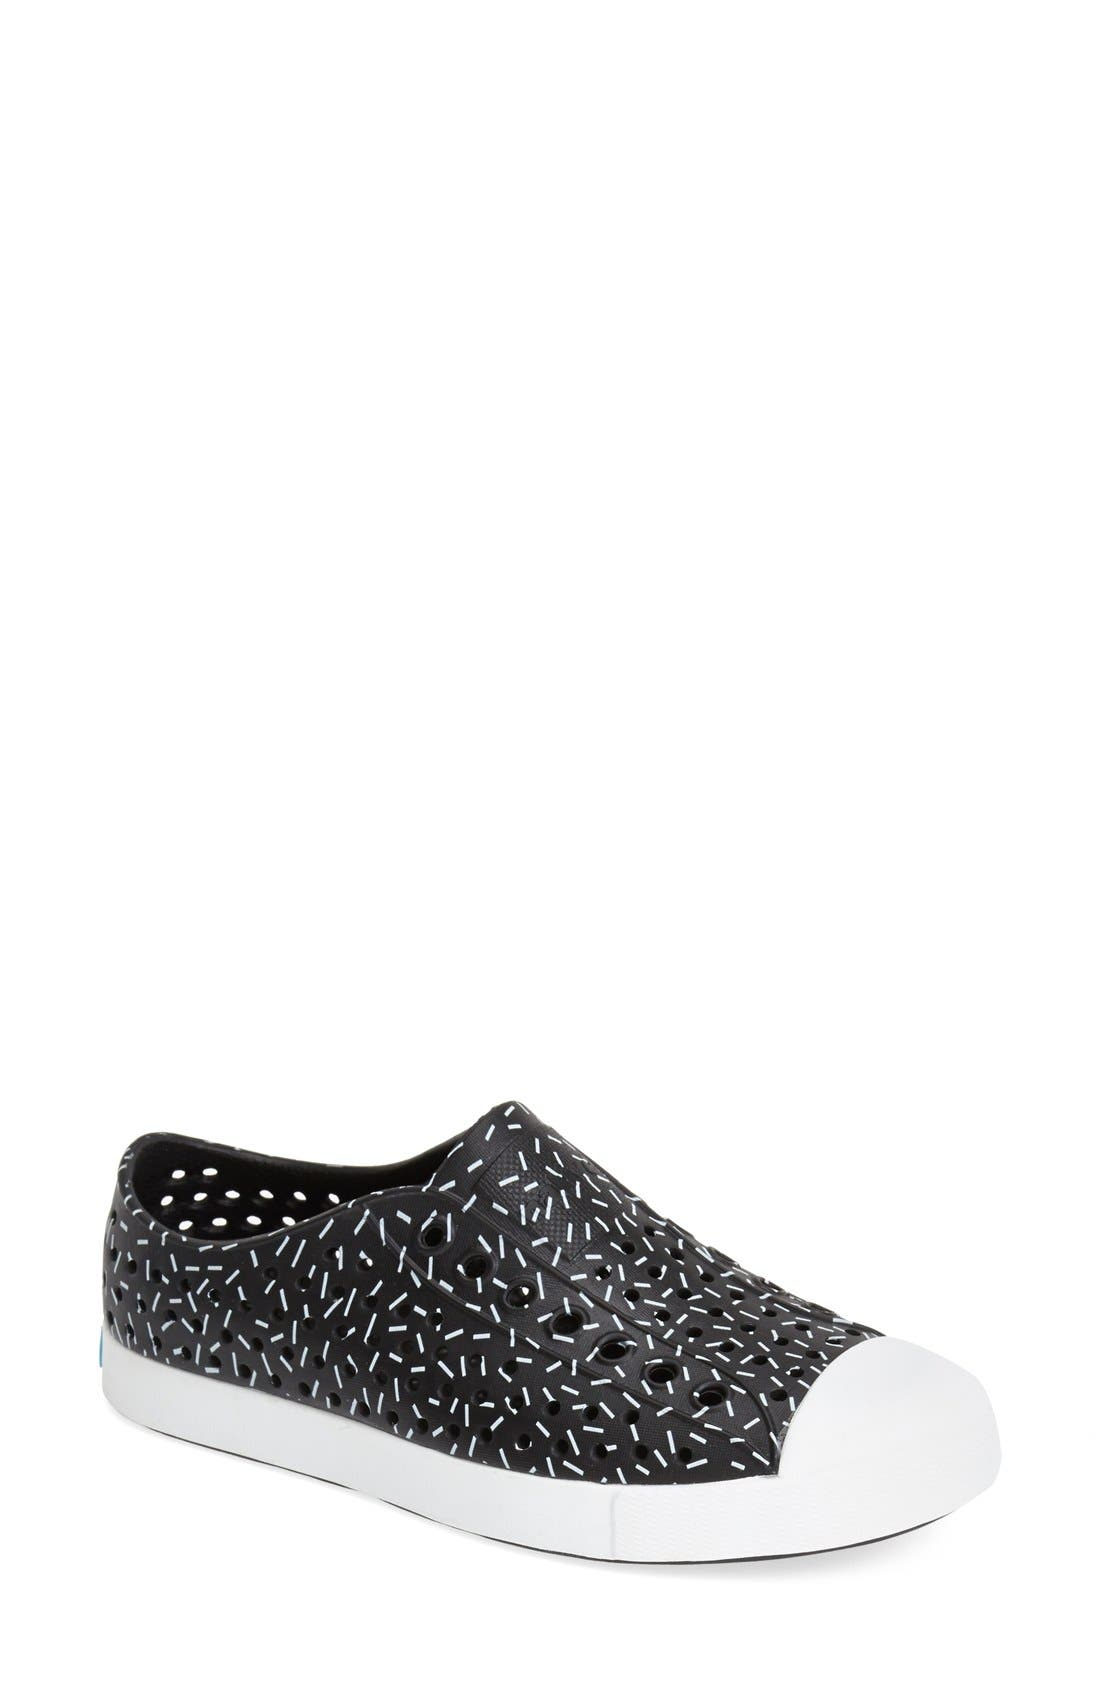 'Jefferson' Printed Slip-On Sneaker,                             Main thumbnail 2, color,